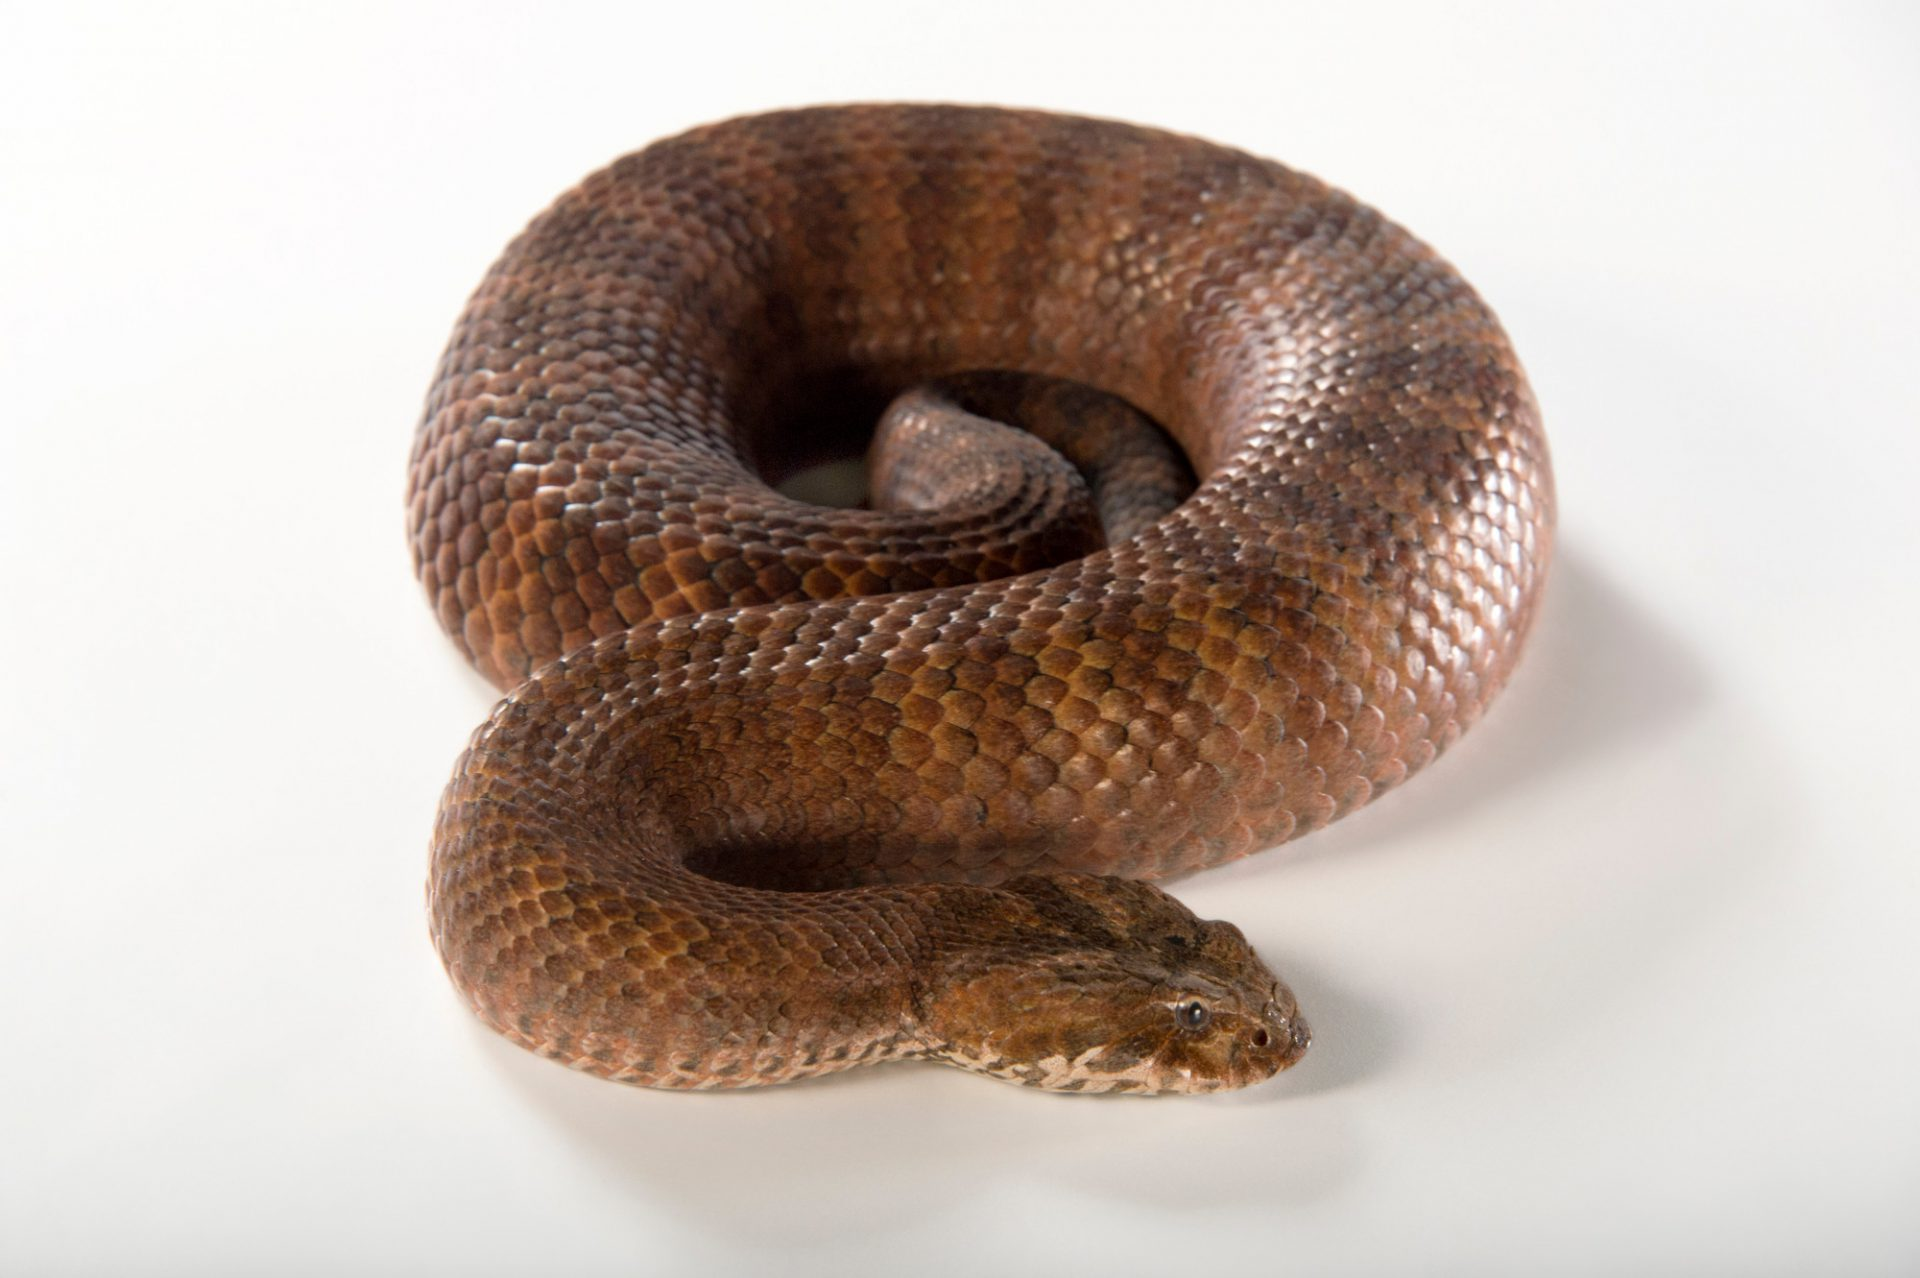 Picture of a common death adder (Acanthophis antarcticus) at the Healesville Sanctuary.